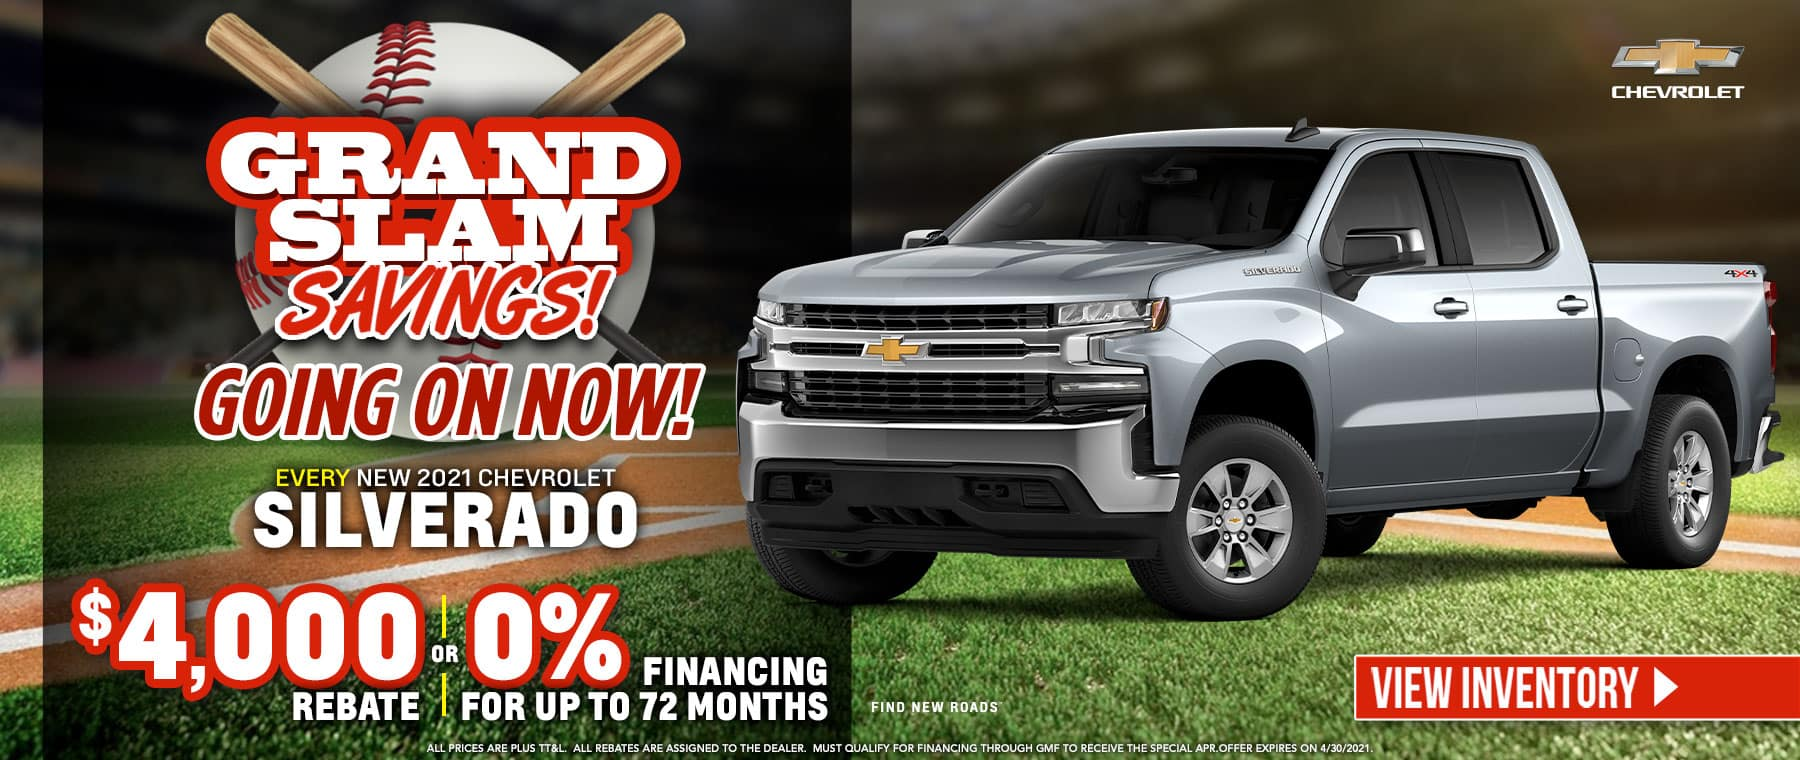 New 2021 Chevrolet Silverado - $4000 Rebate or 0% Financing for up to 72 Months